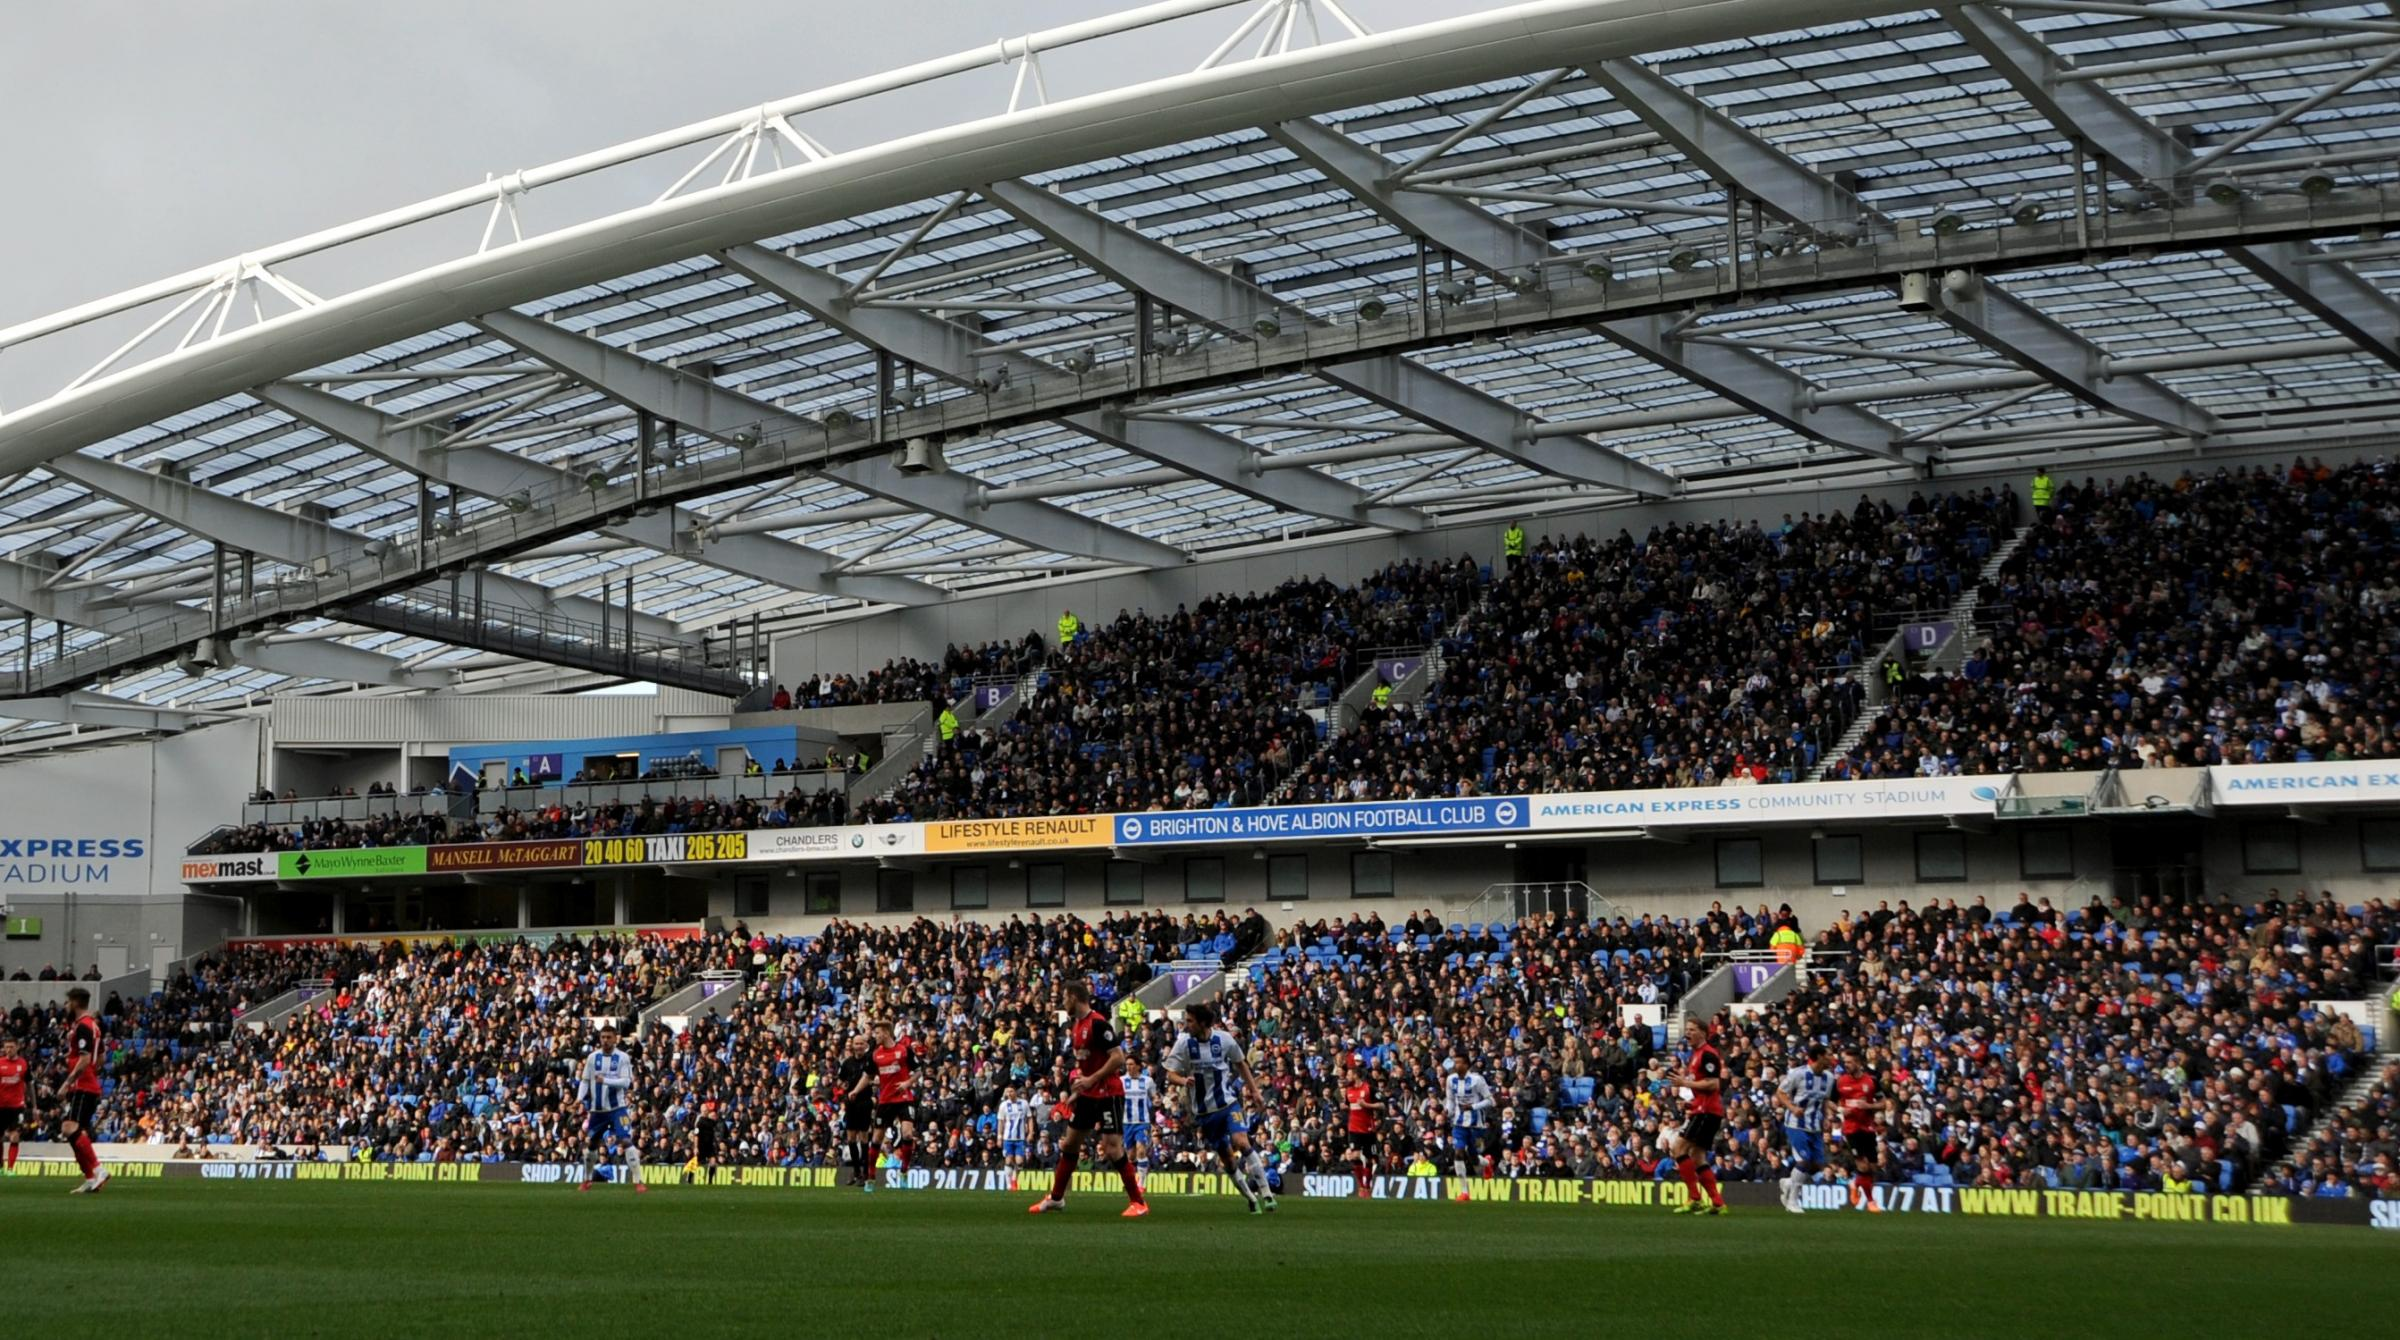 Albion got a big crowd yesterday - but what did they think of the game?